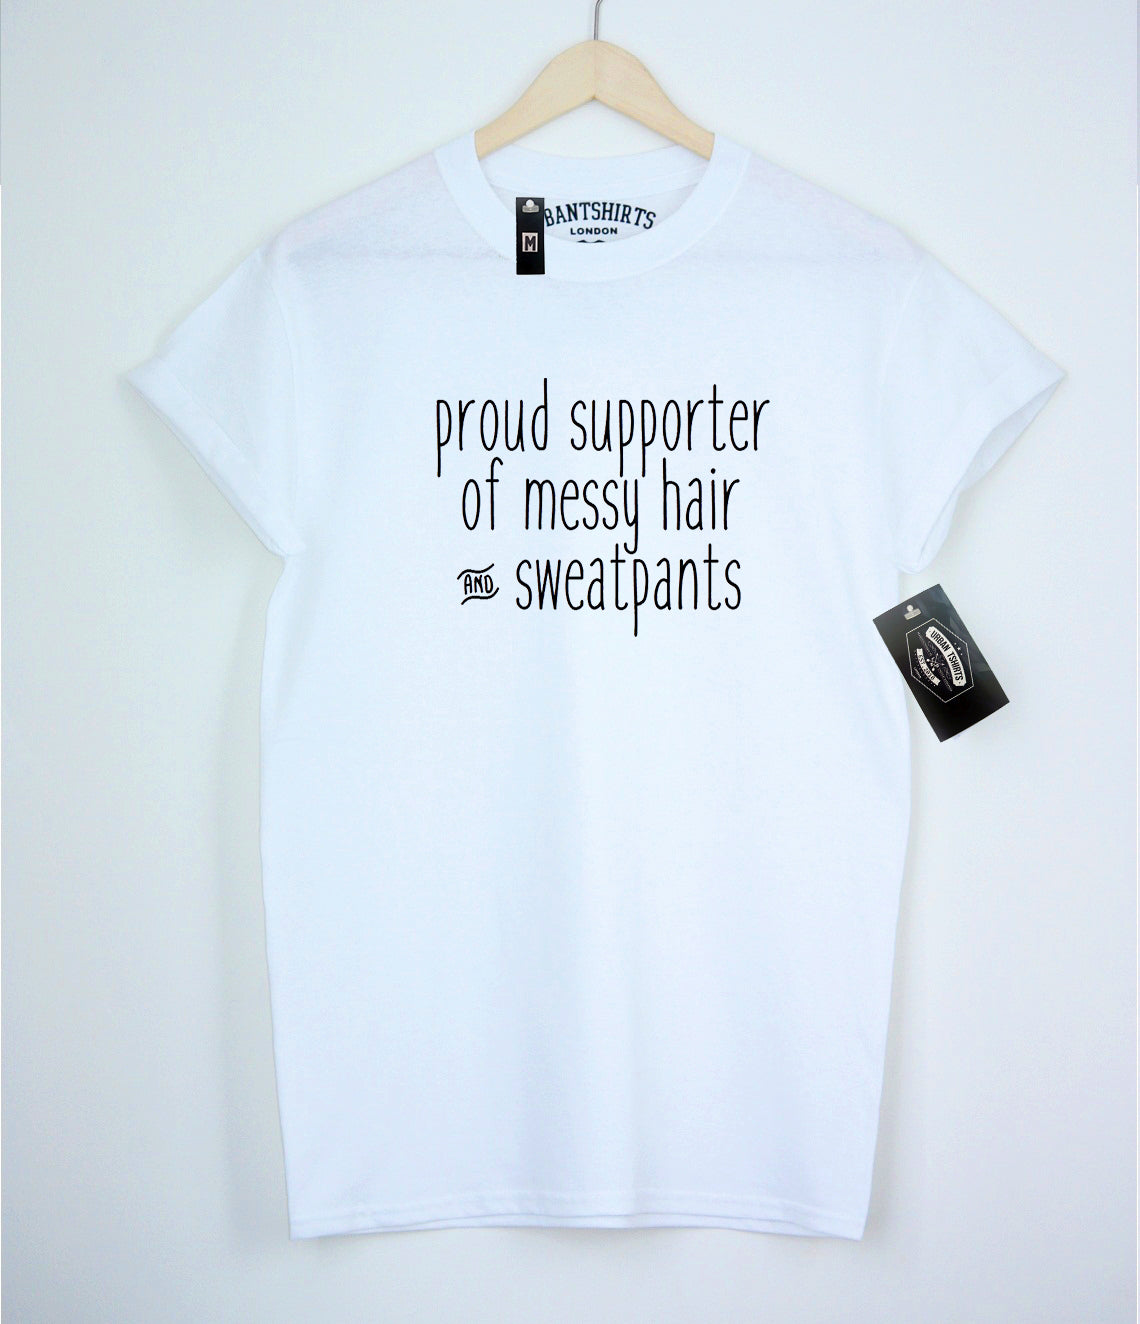 Proud supporter of messy hair and sweatpants T-shirt - Urbantshirts.co.uk